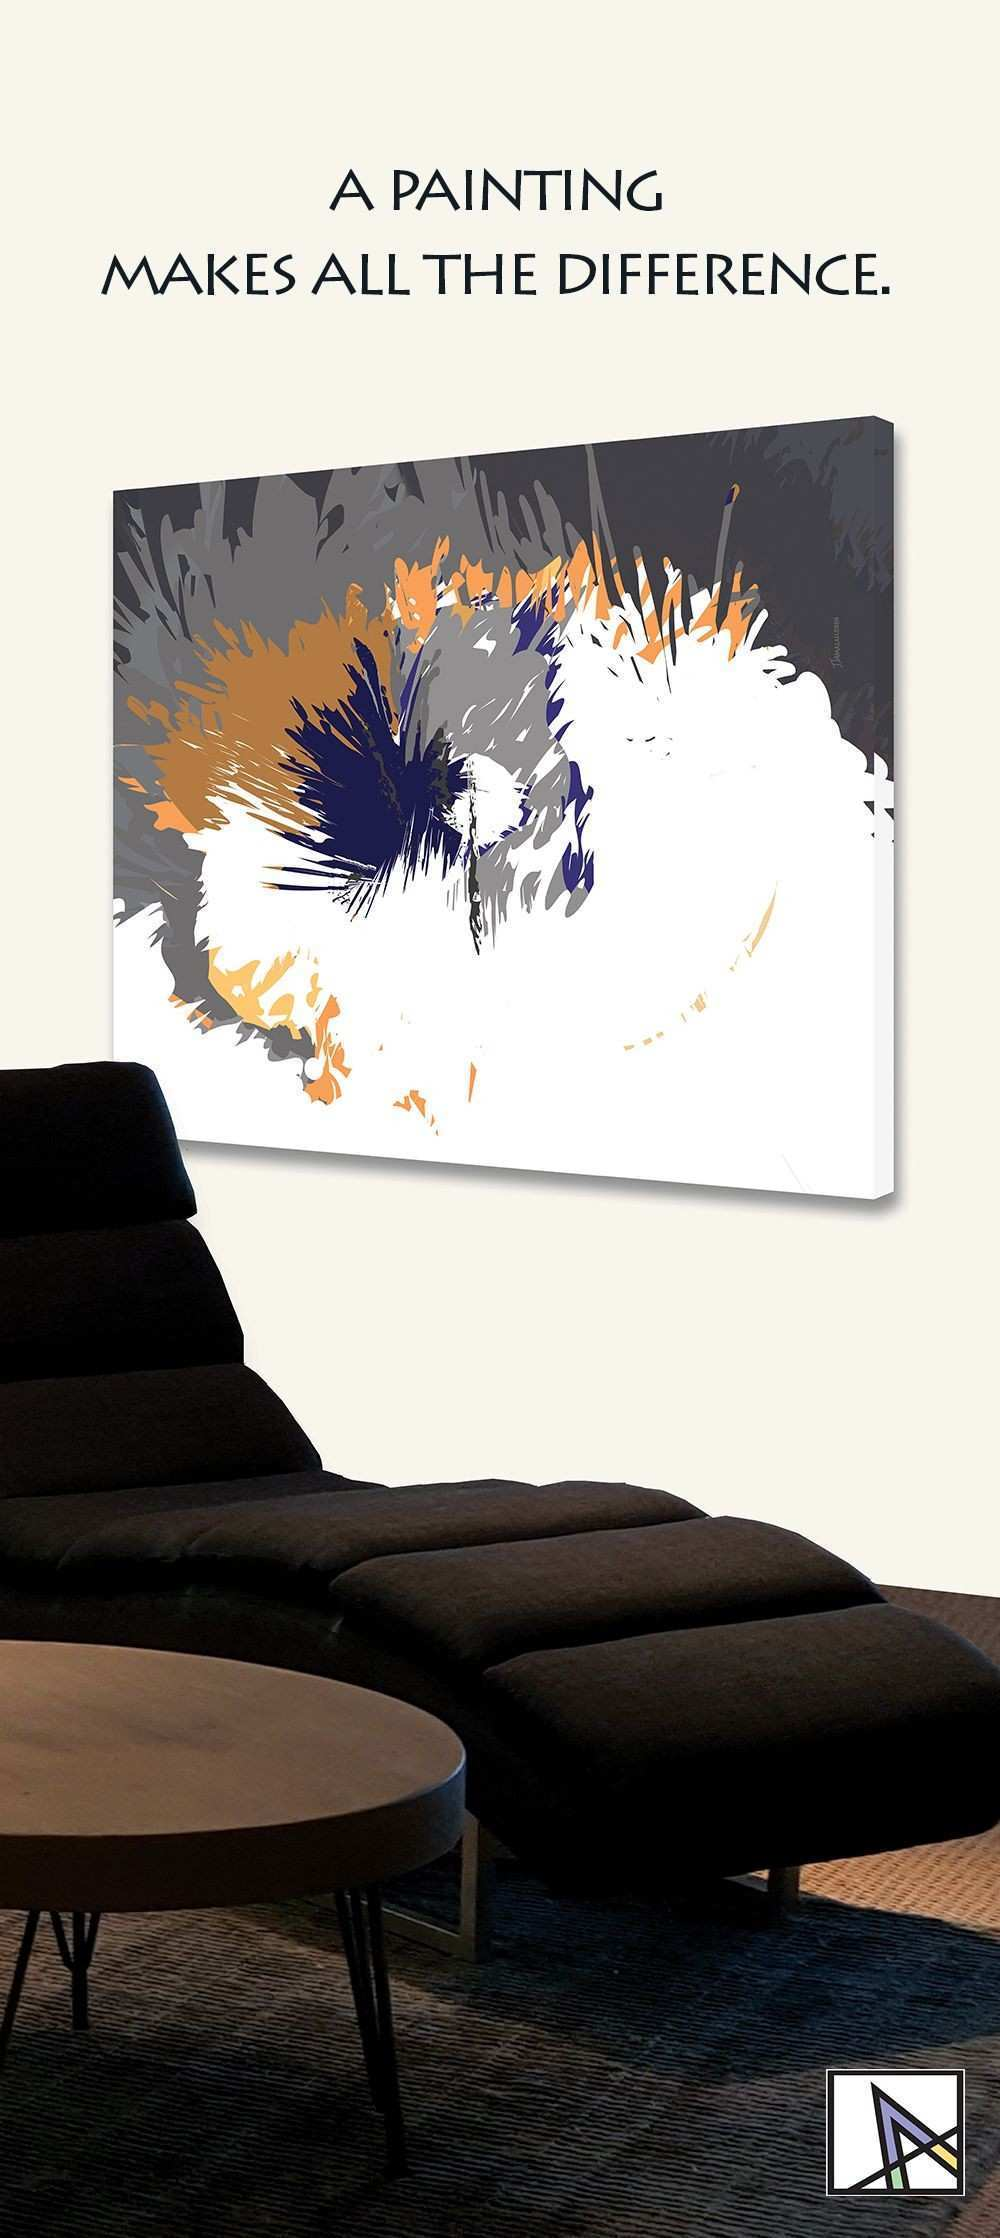 My Fine Art Prints are Museum Quality Giclee Canvas Reproductions